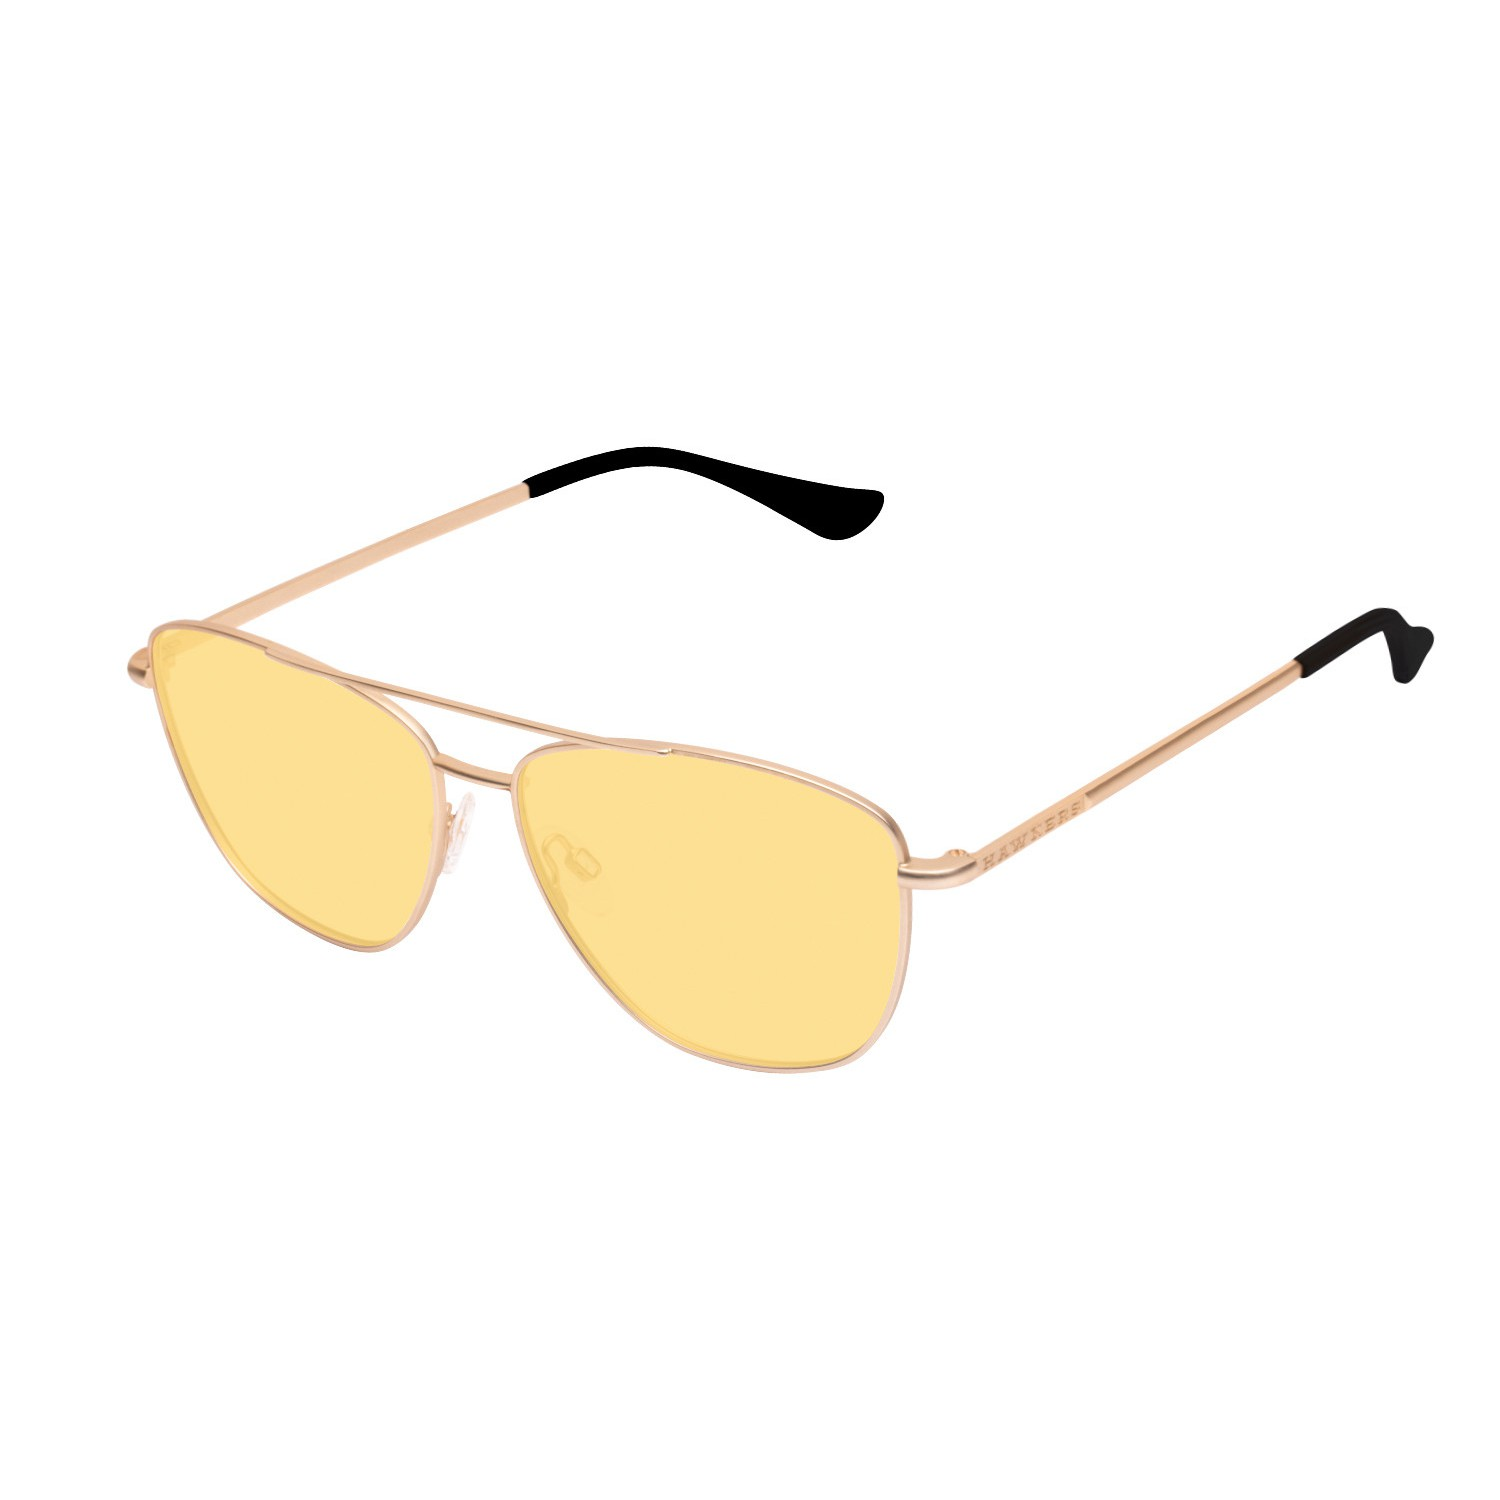 Image For Hawkers Sonnenbrille Gold  Yellow La linse